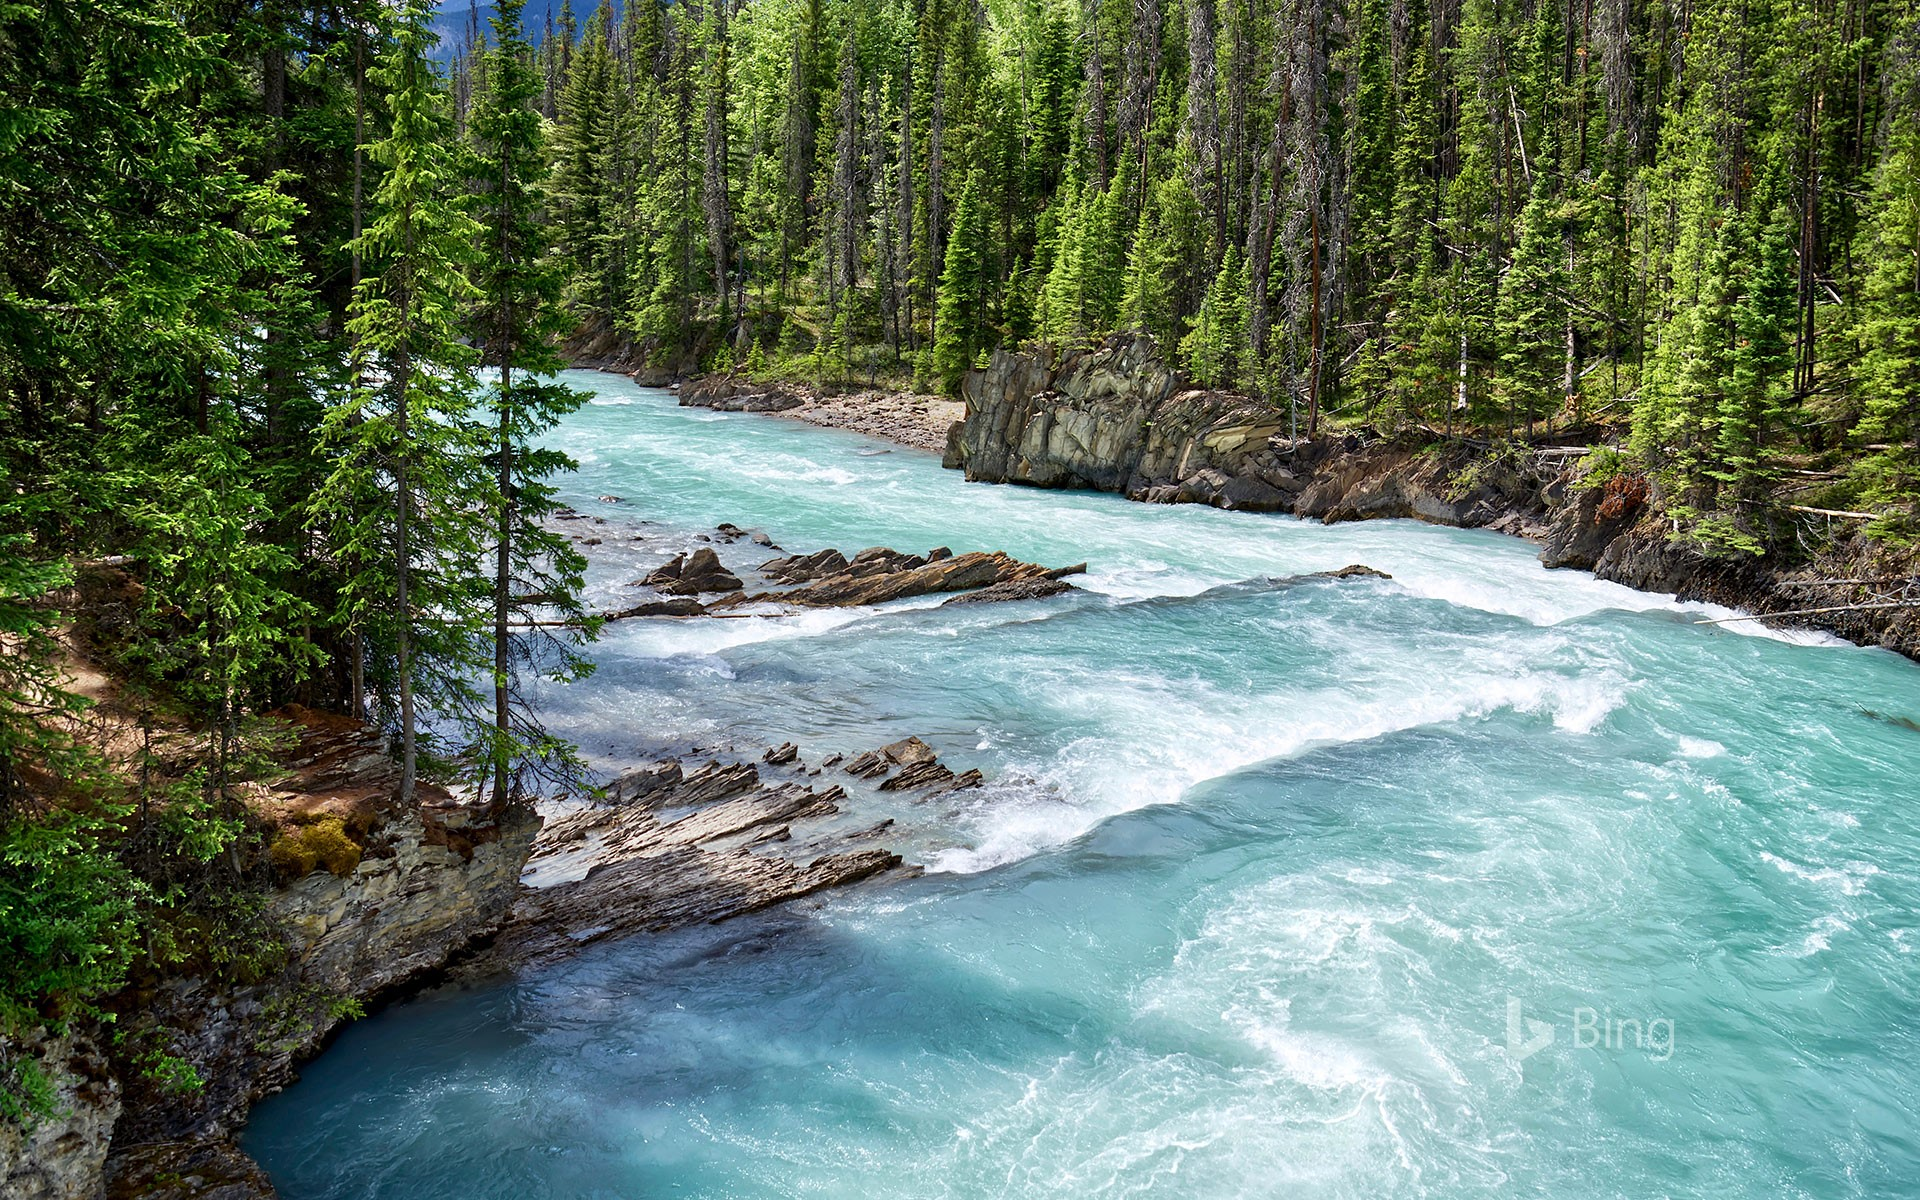 Glacial turquoise water of Kicking Horse River, Yoho National Park, B.C.